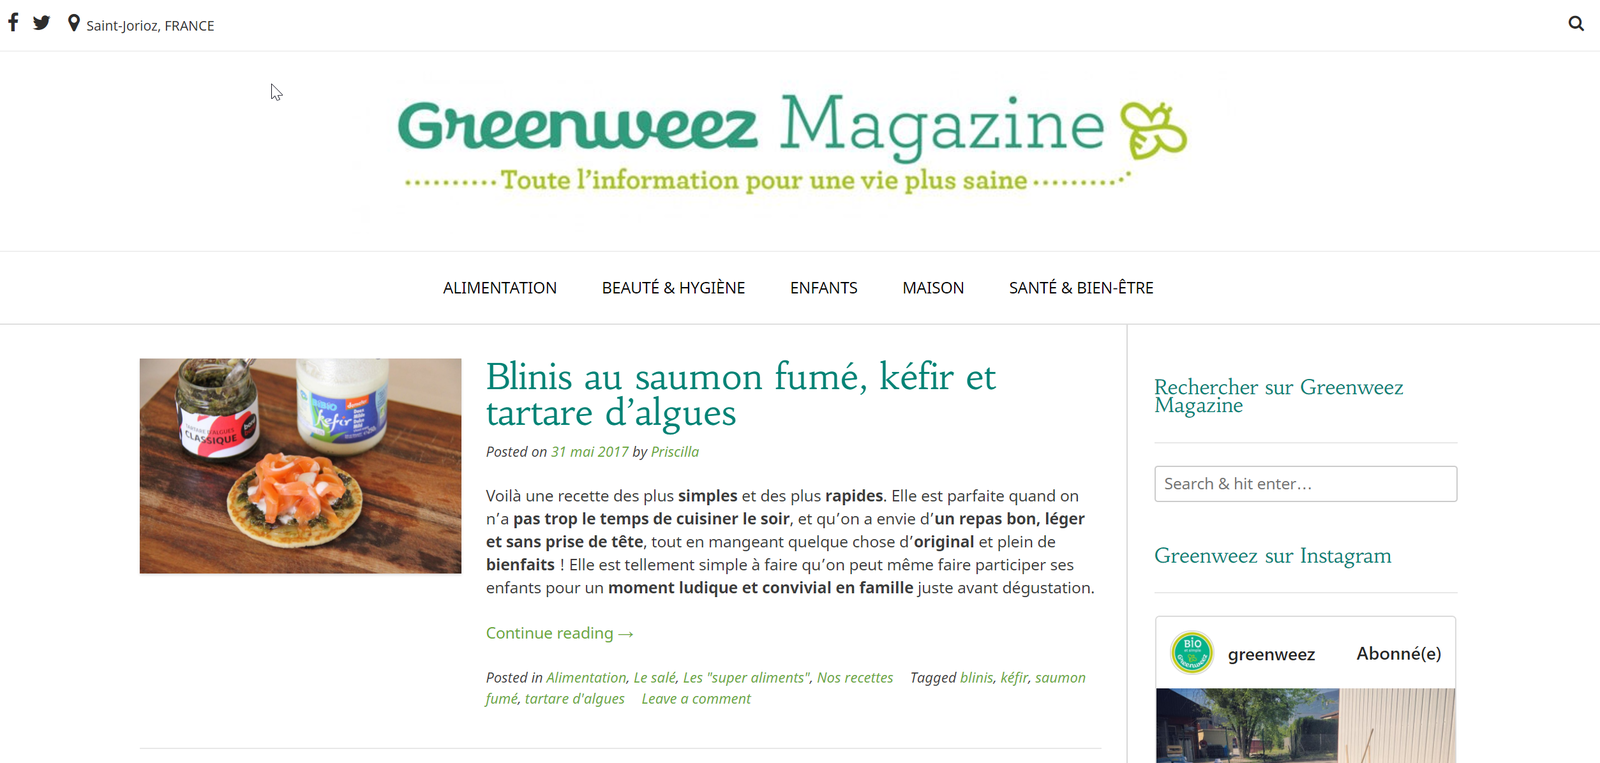 Greenweez Magazine